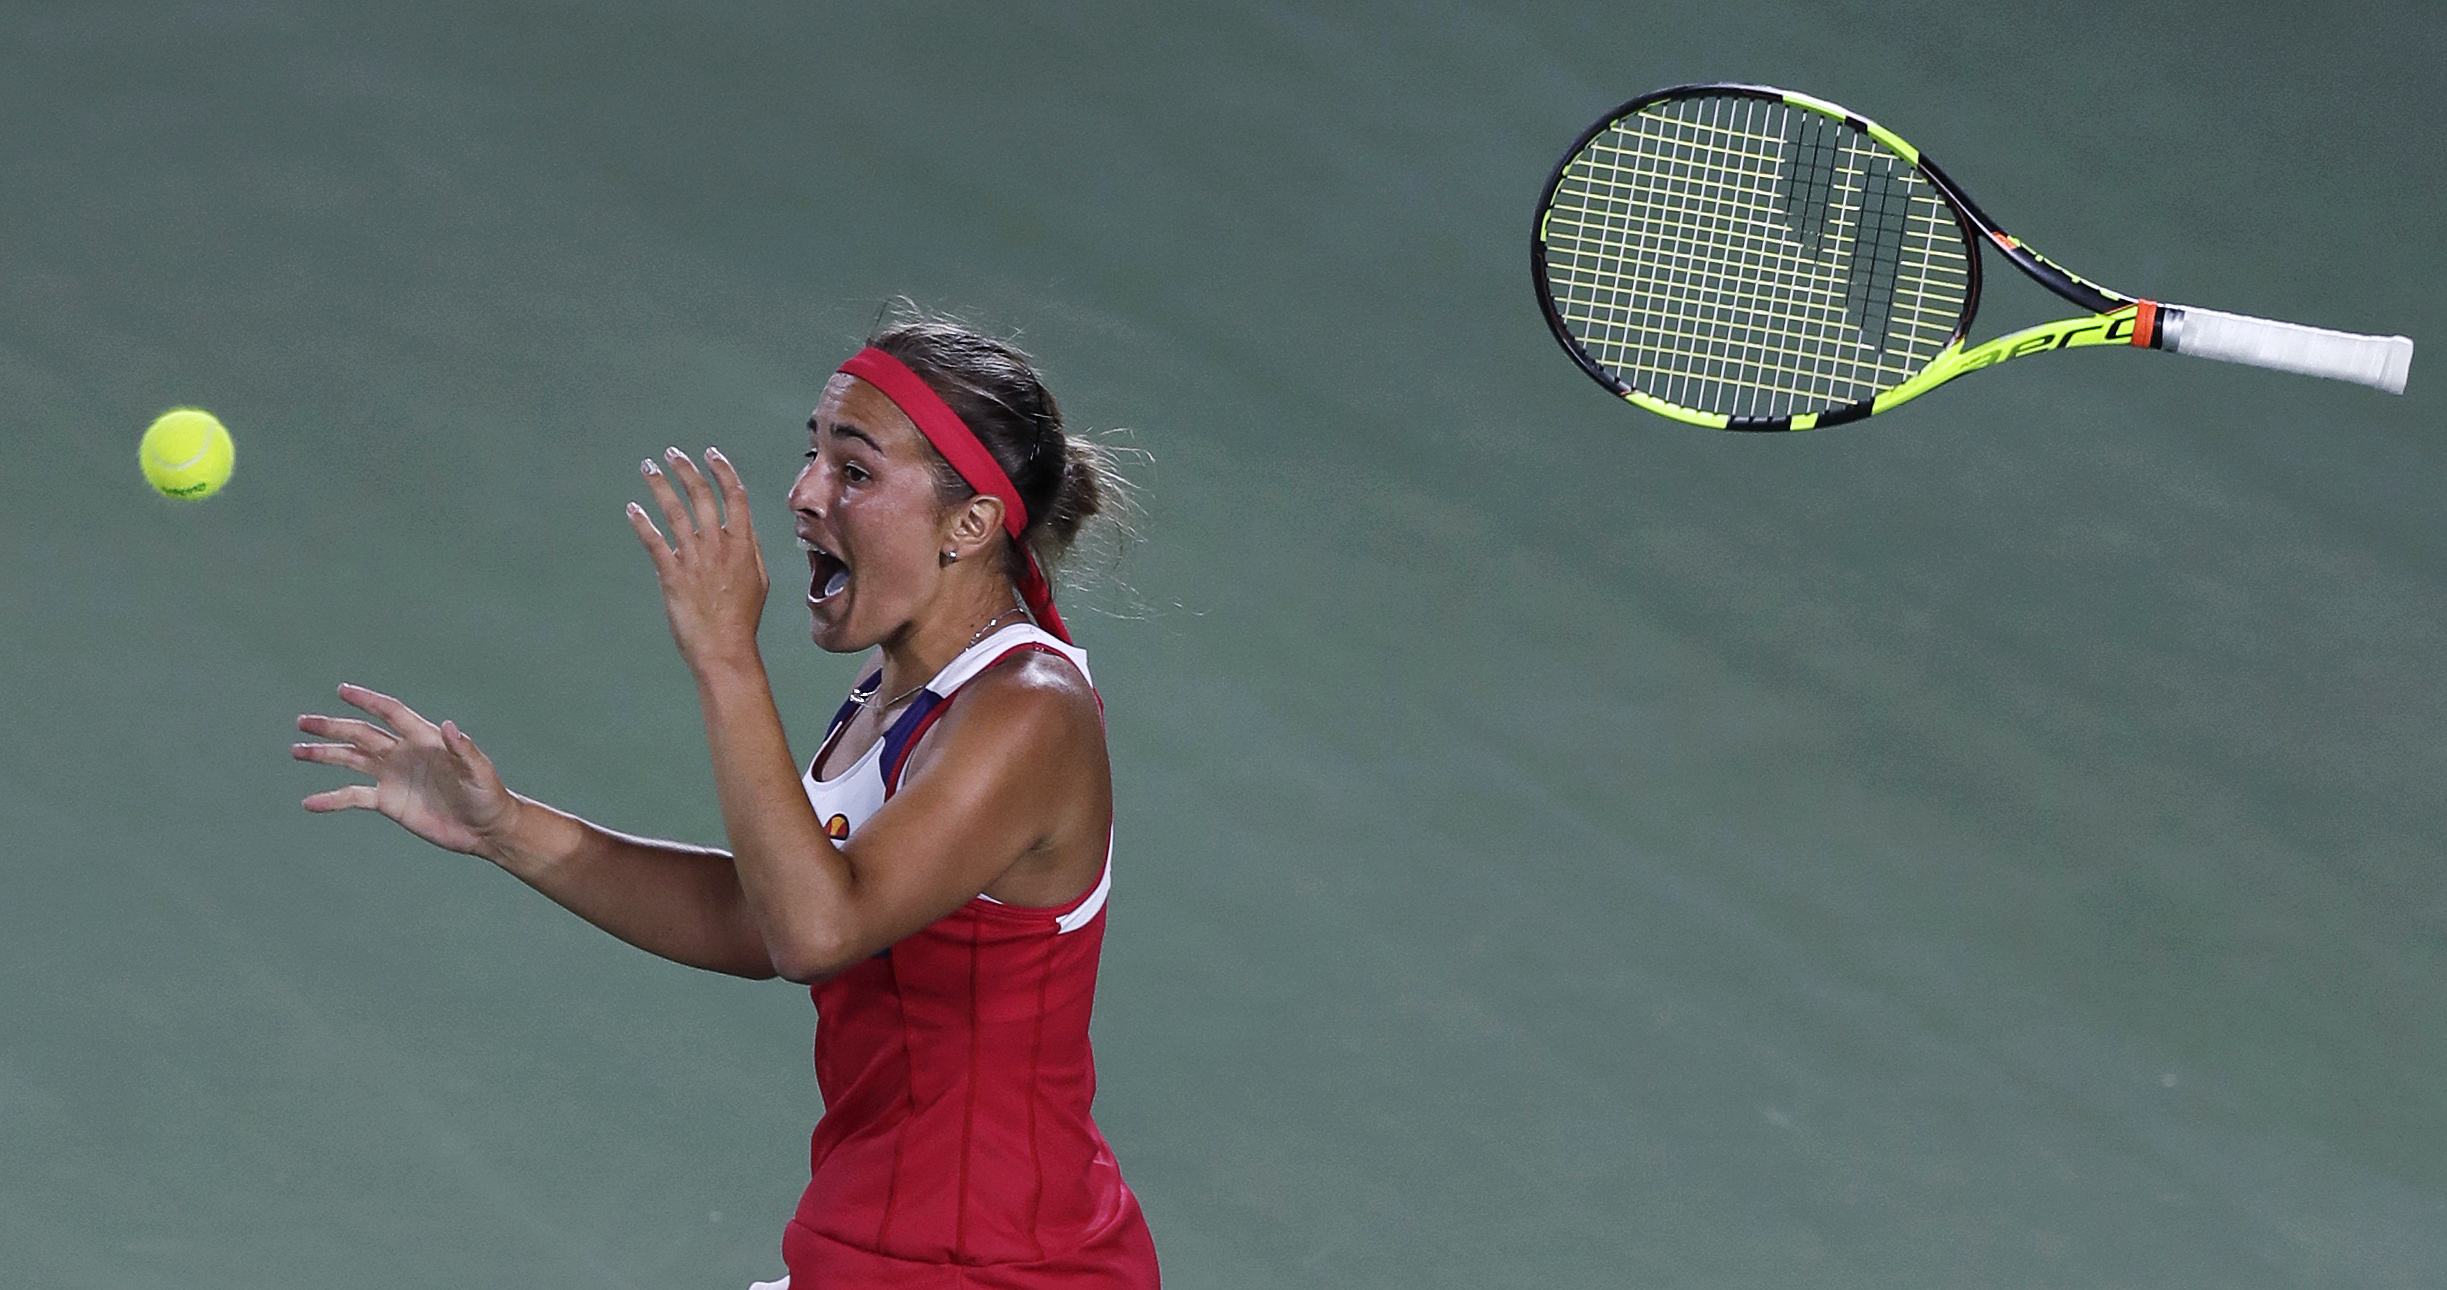 FILE - In this Aug. 13, 2016 file photo, Monica Puig, of Puerto Rico, tosses her racquet and celebrates after winning the gold medal against Angelique Kerber, of Germany, during the final round at the 2016 Summer Olympics in Rio de Janeiro, Brazil. (AP Ph